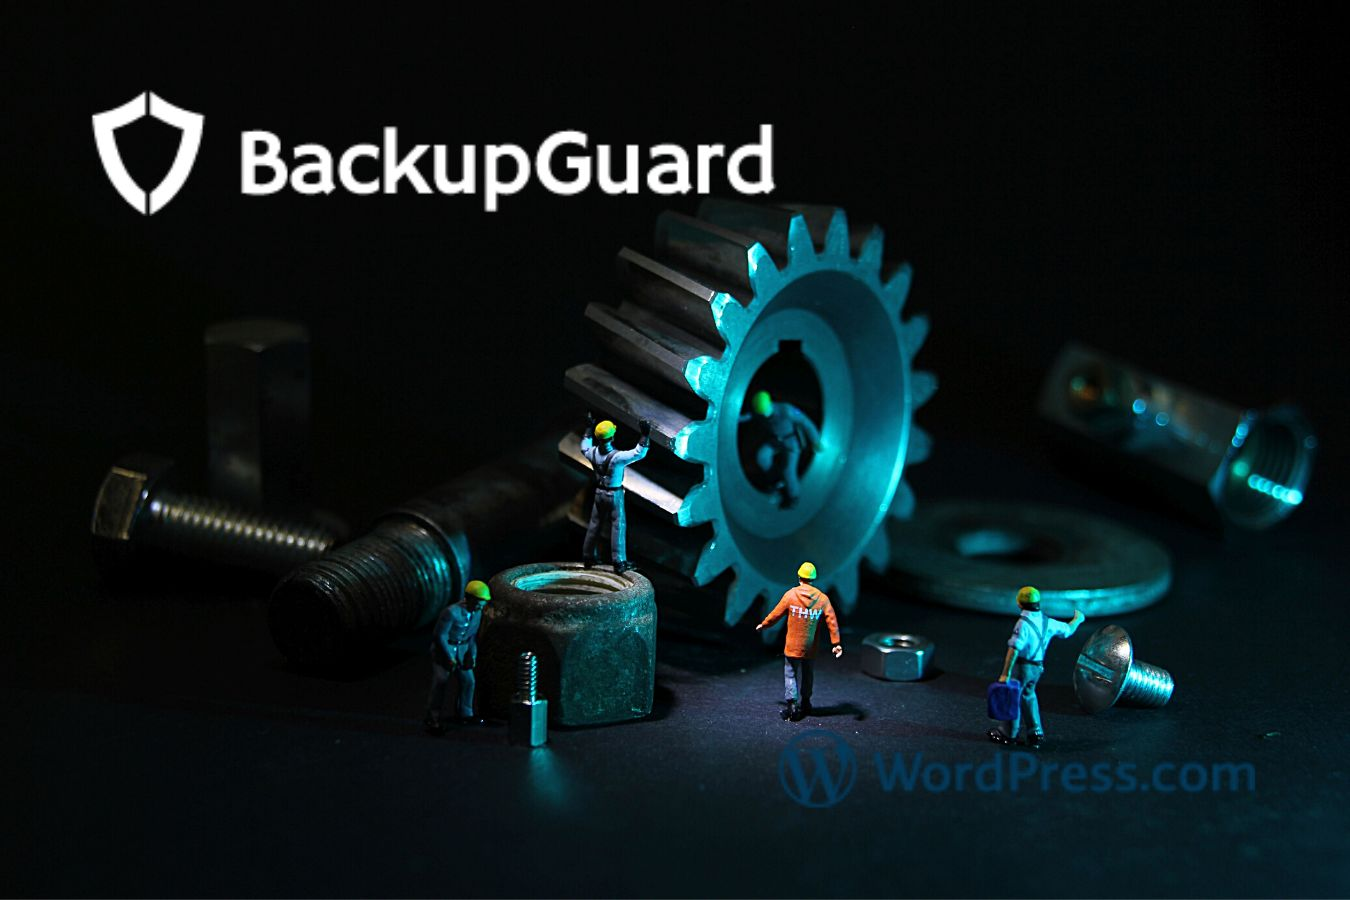 Come fare il backup del sito wordpress